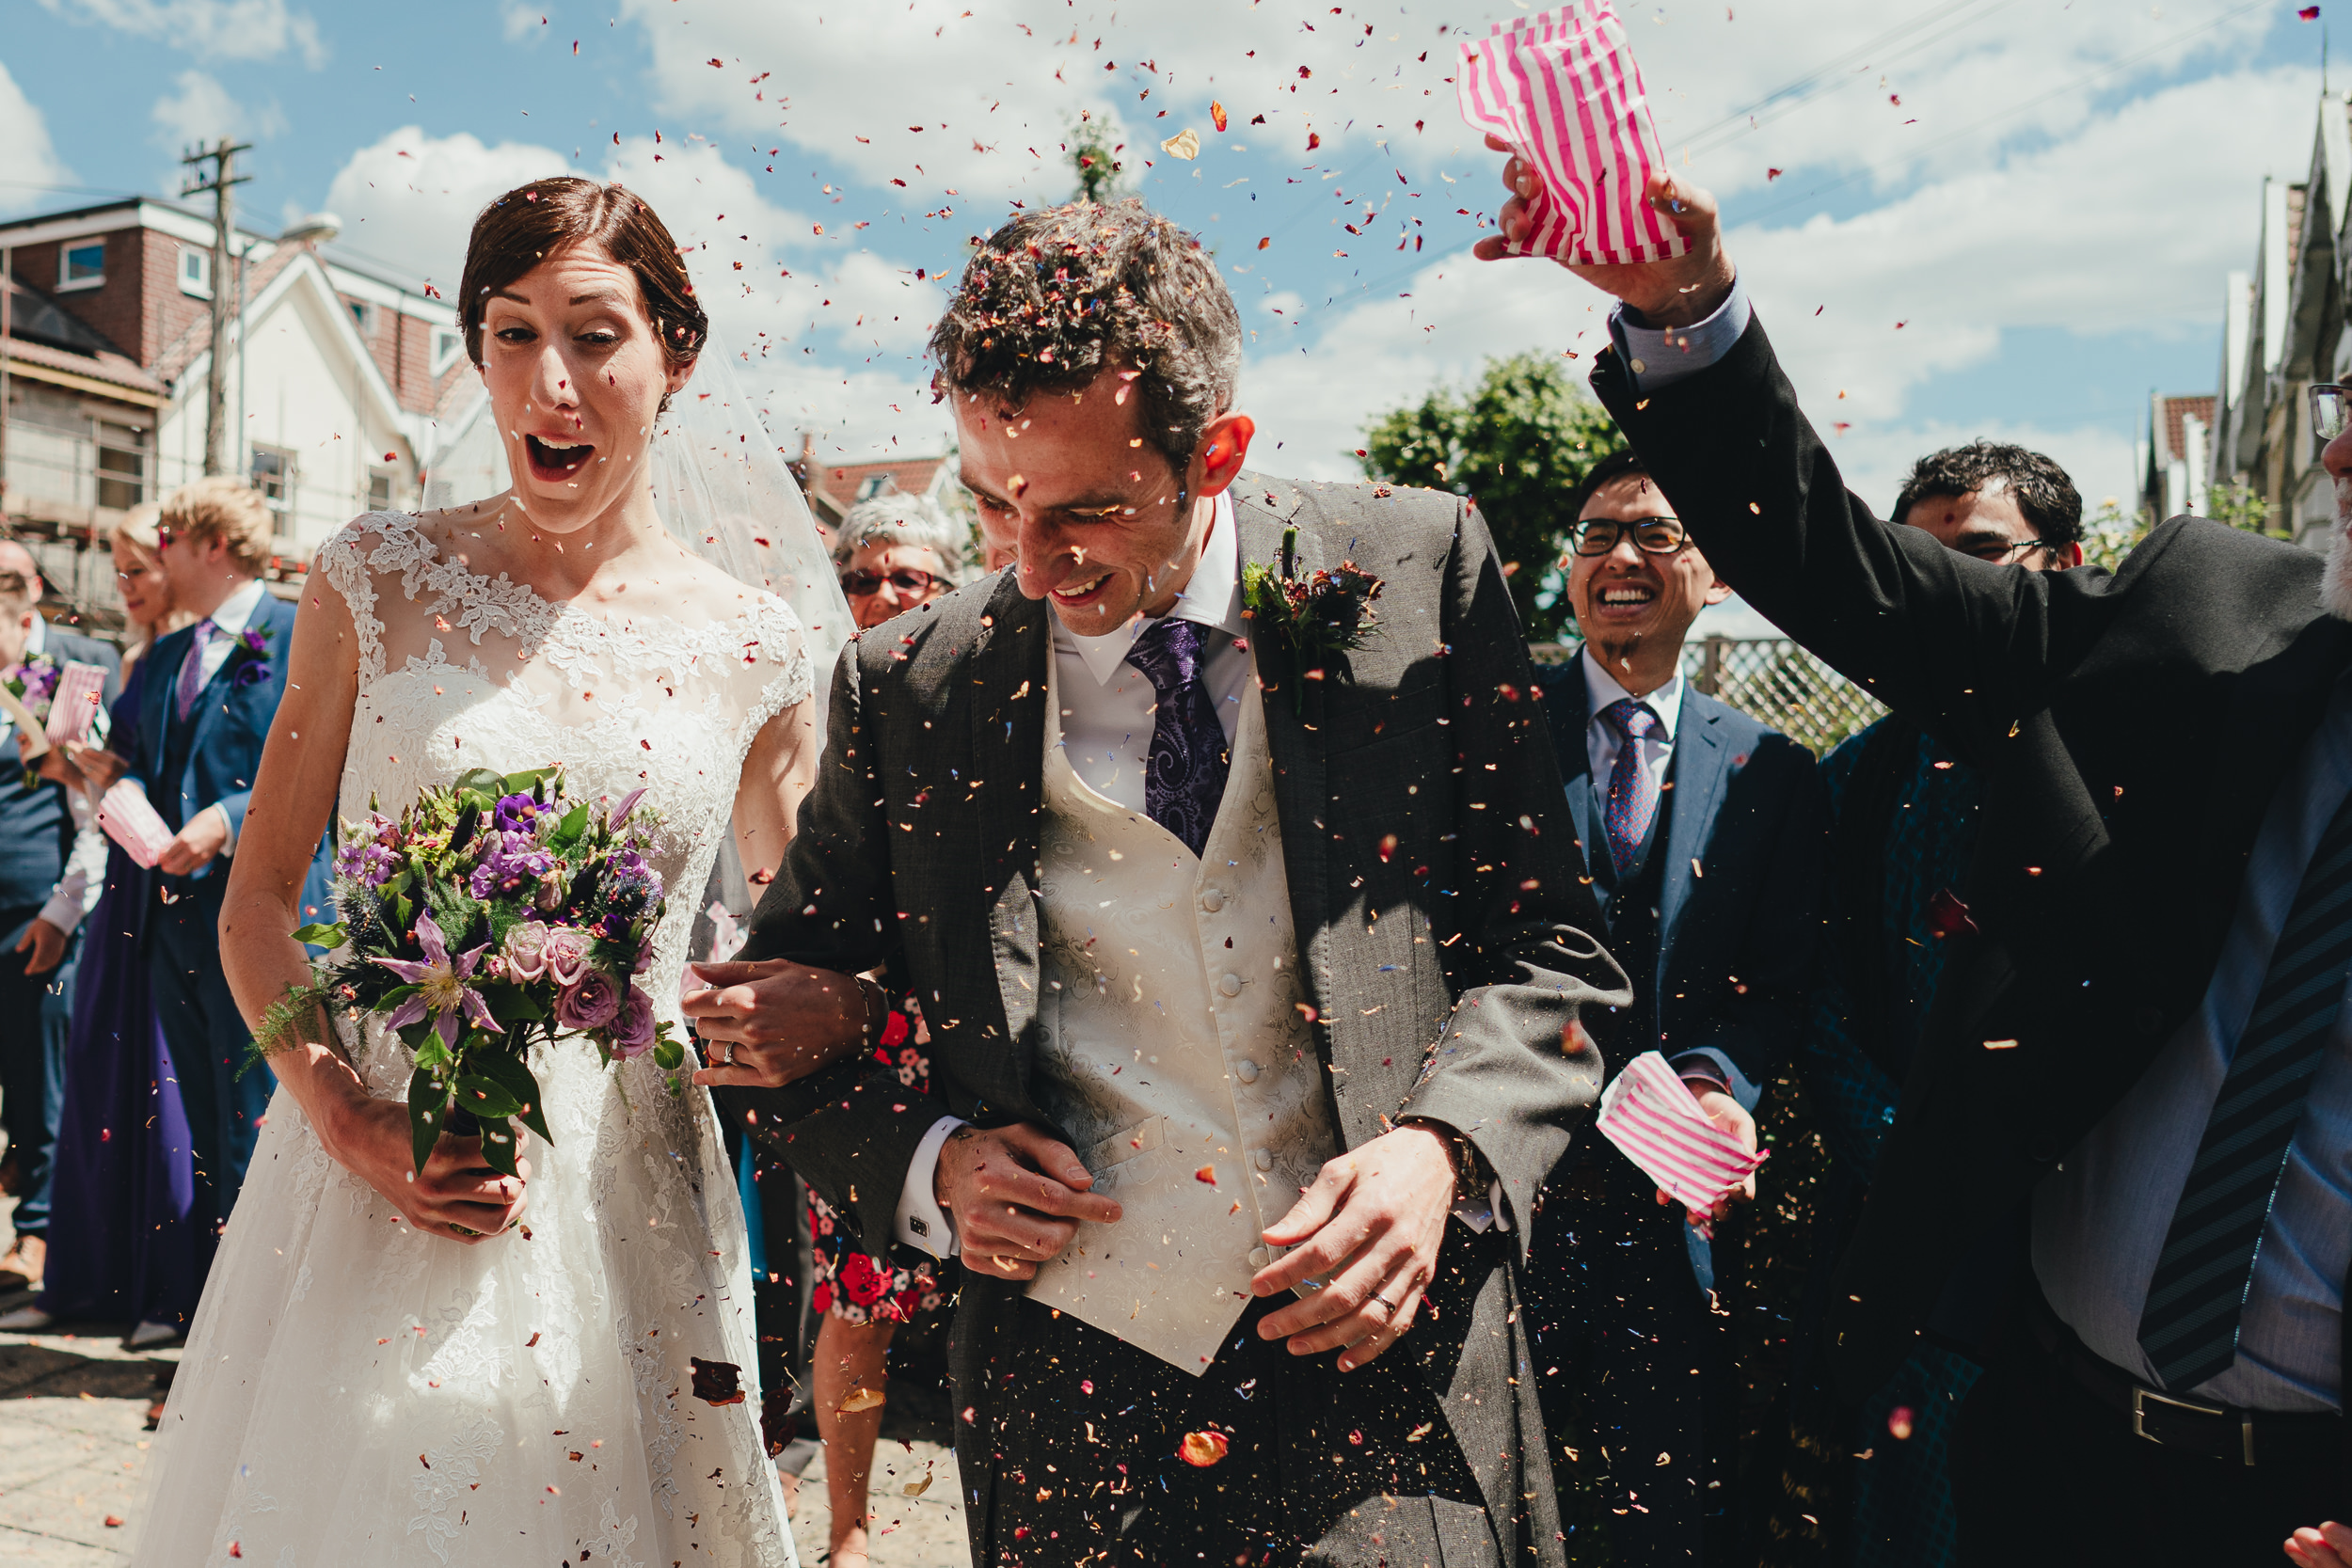 Guests throwing confetti at the Bride and Groom